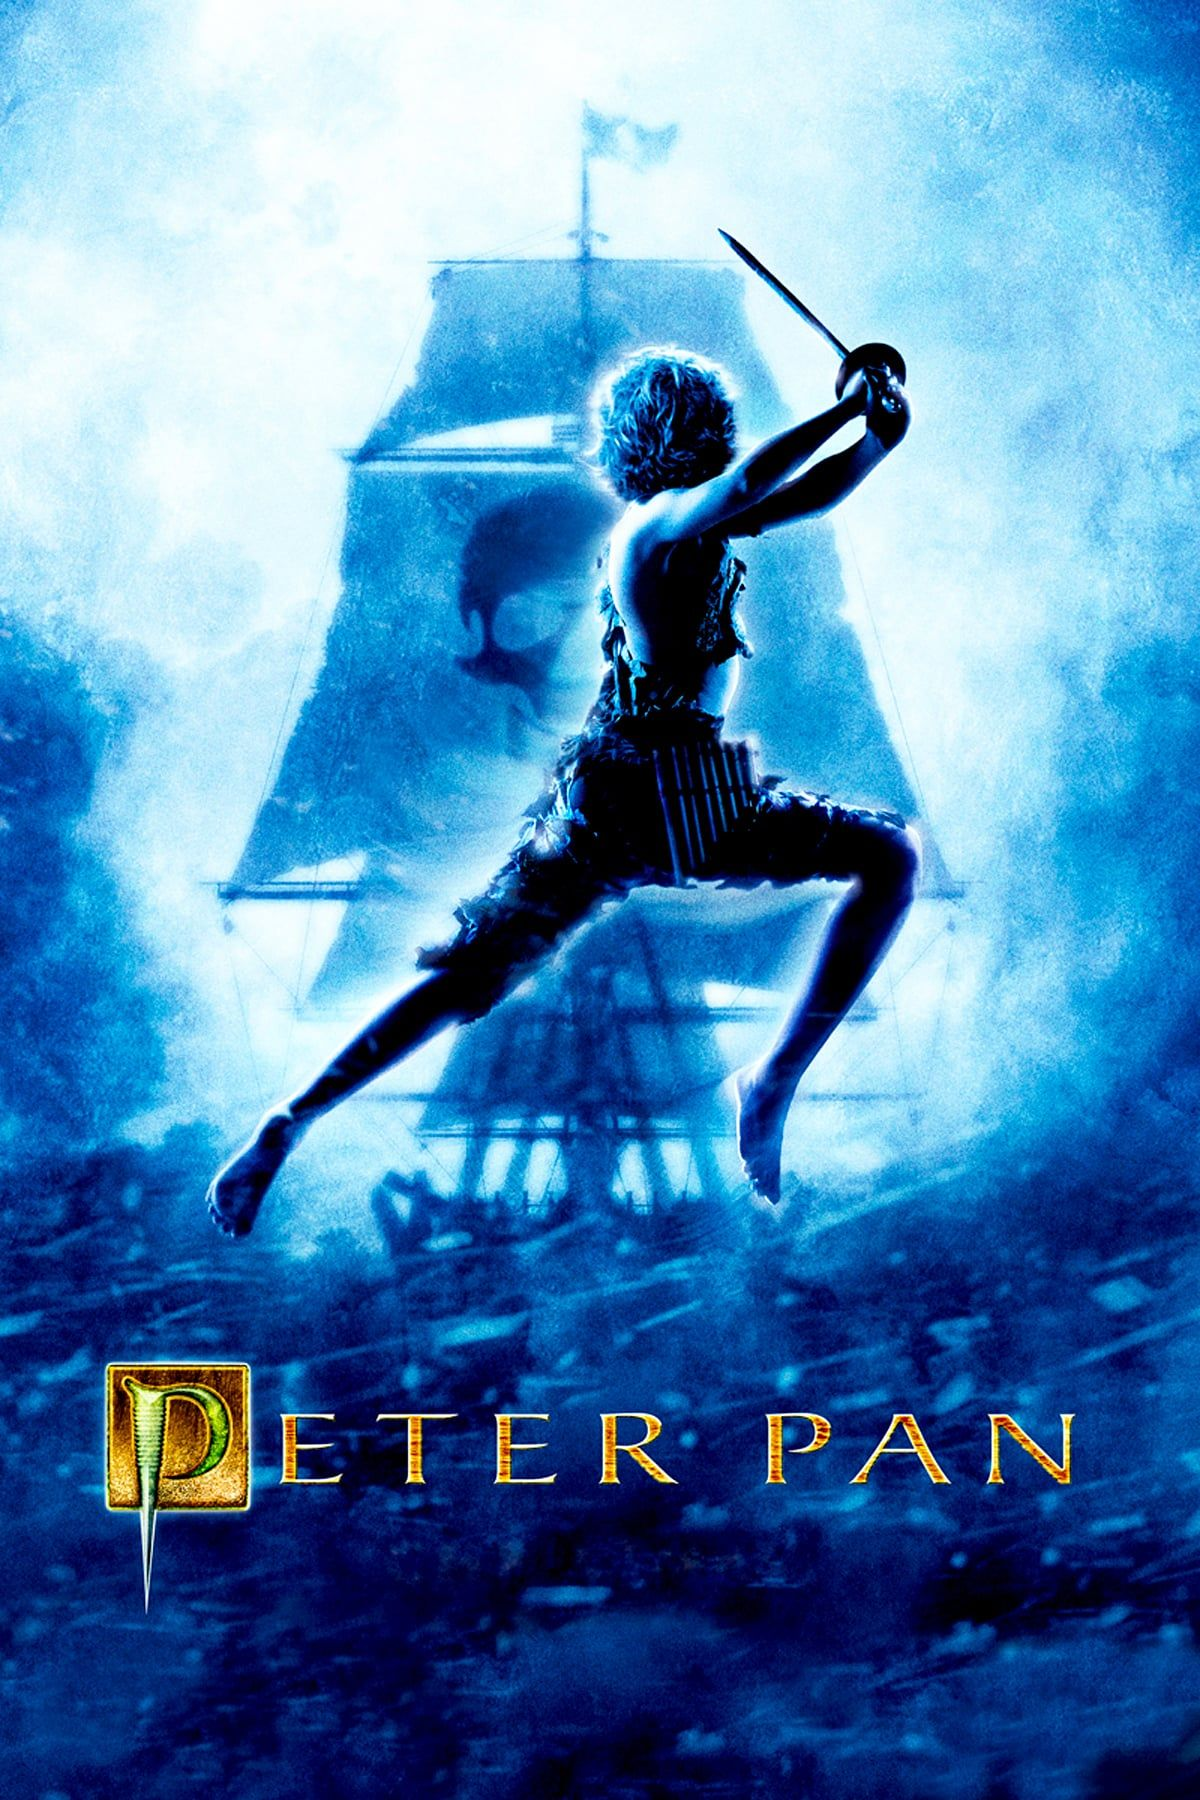 1200x1800 Peter Pan Wallpapers High Quality | Download Free